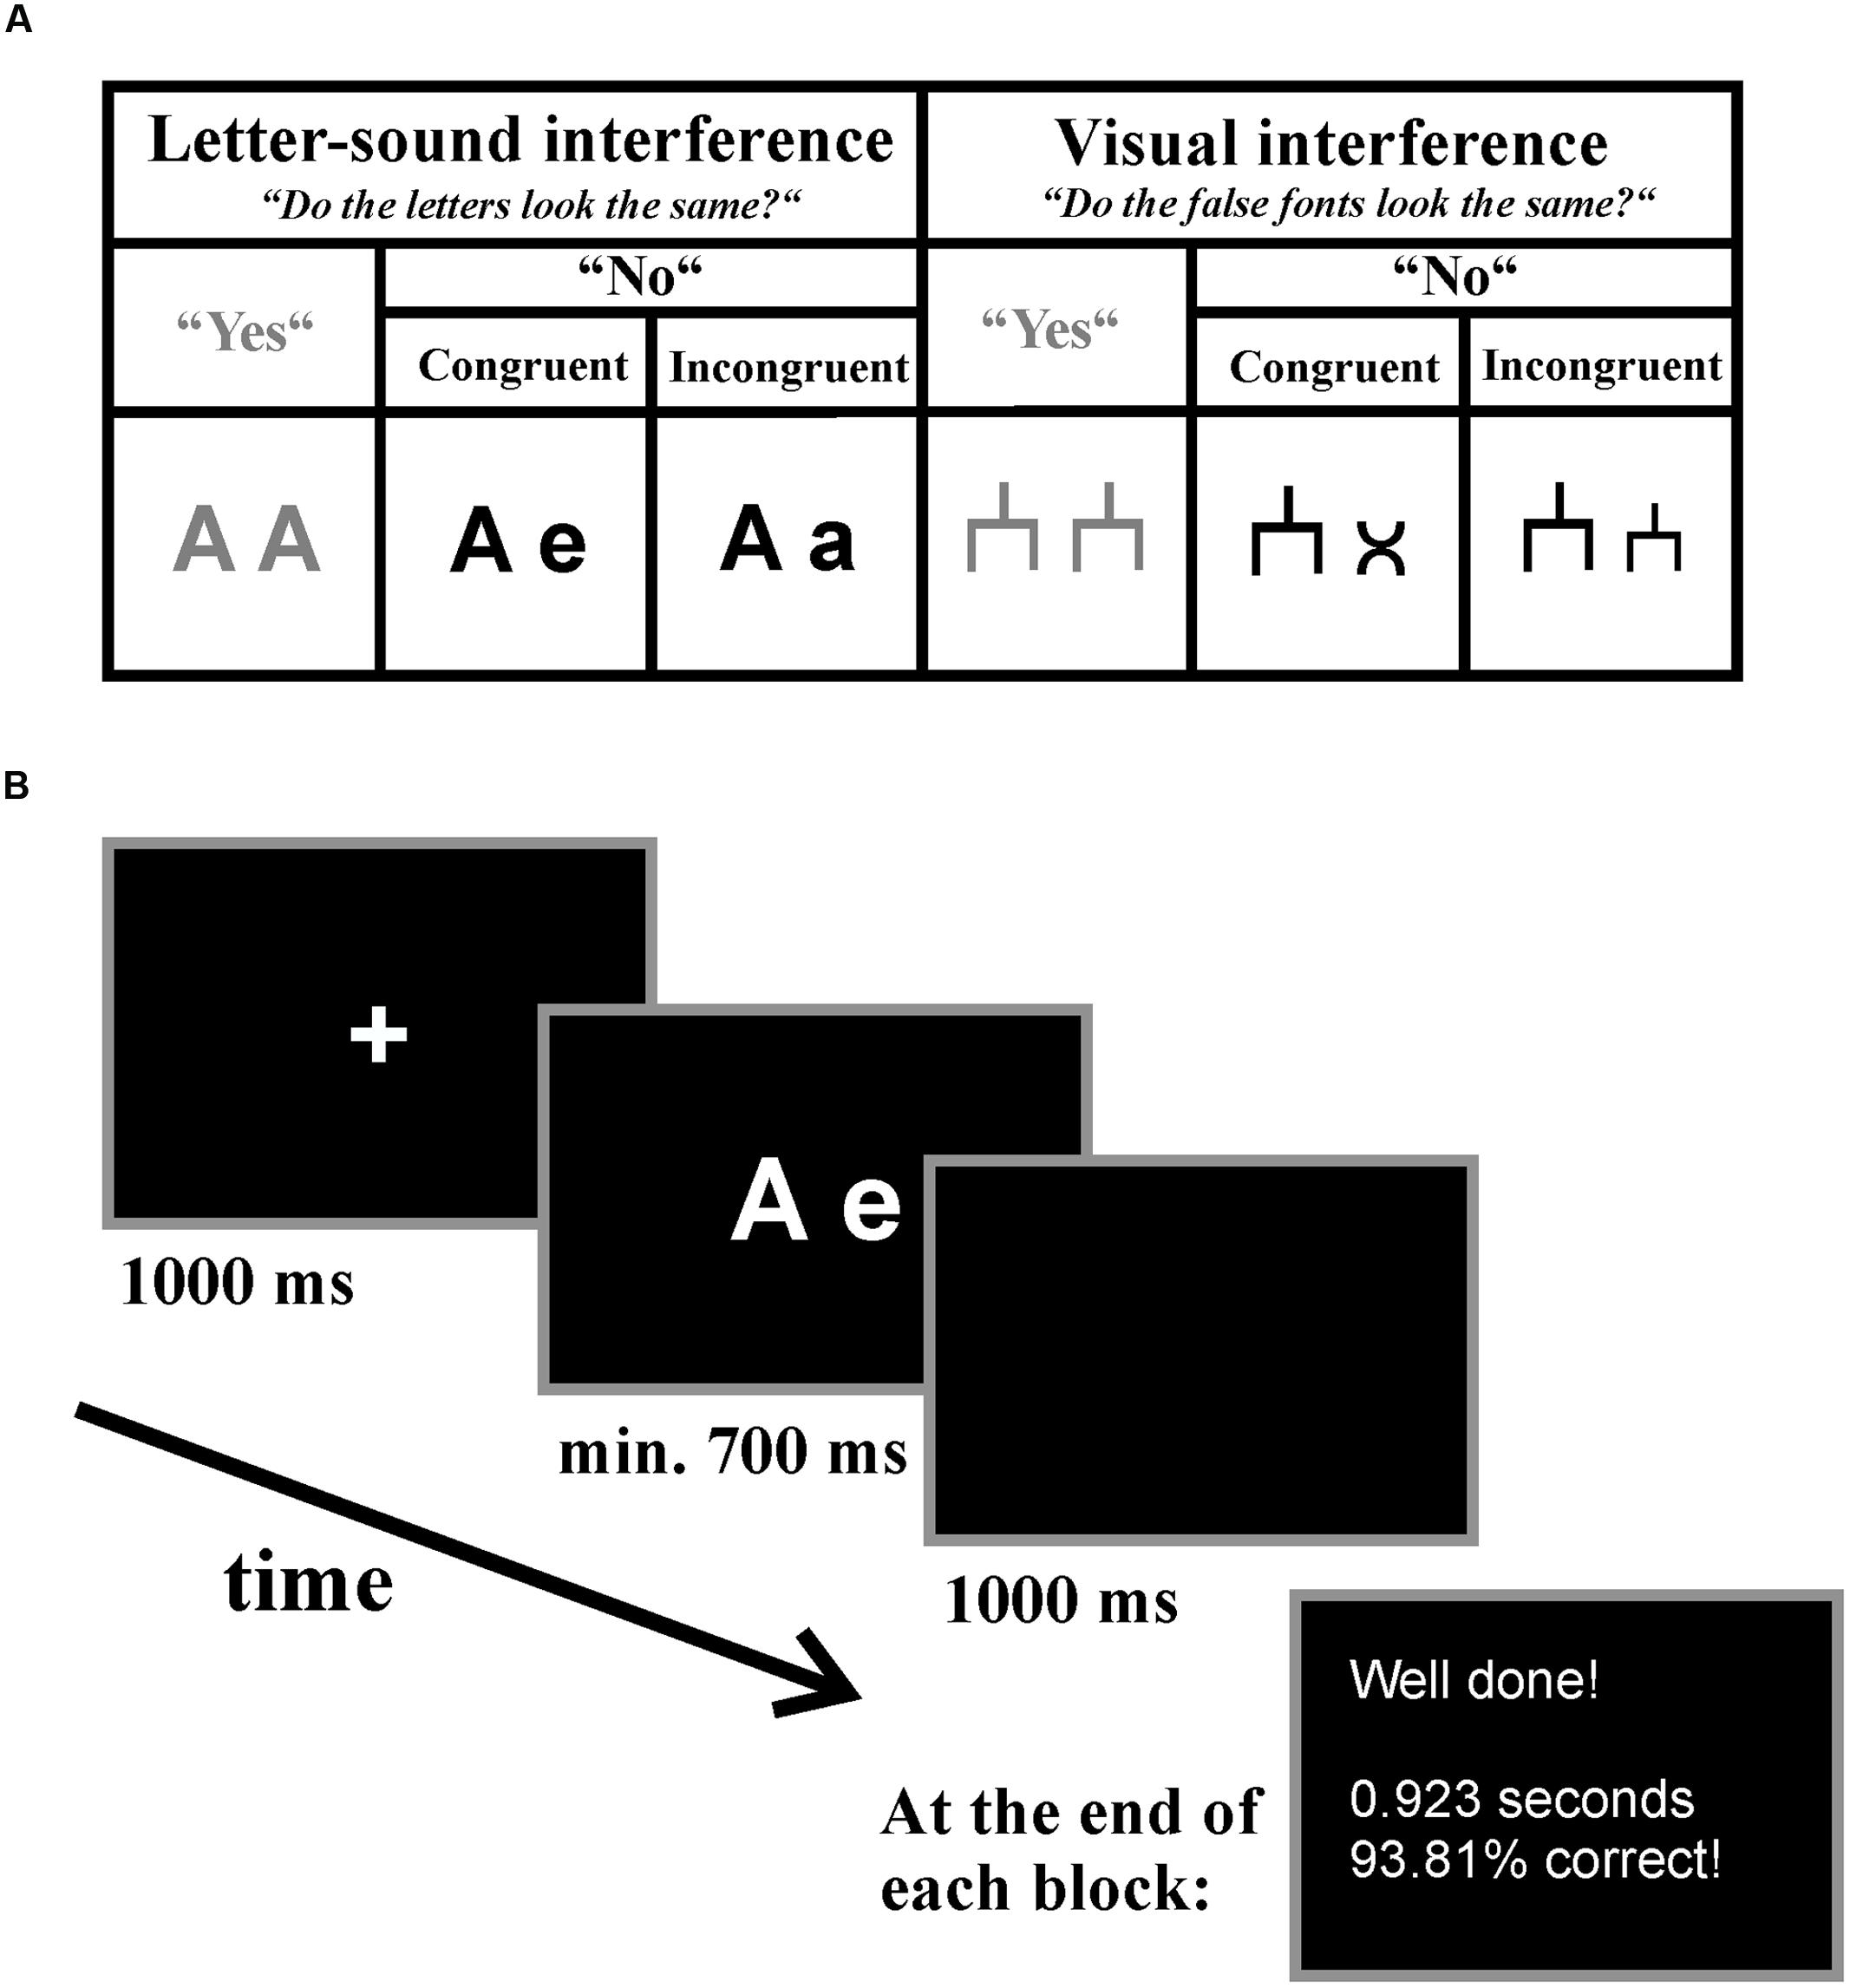 Frontiers Deficits In Letter Speech Sound Associations But Intact